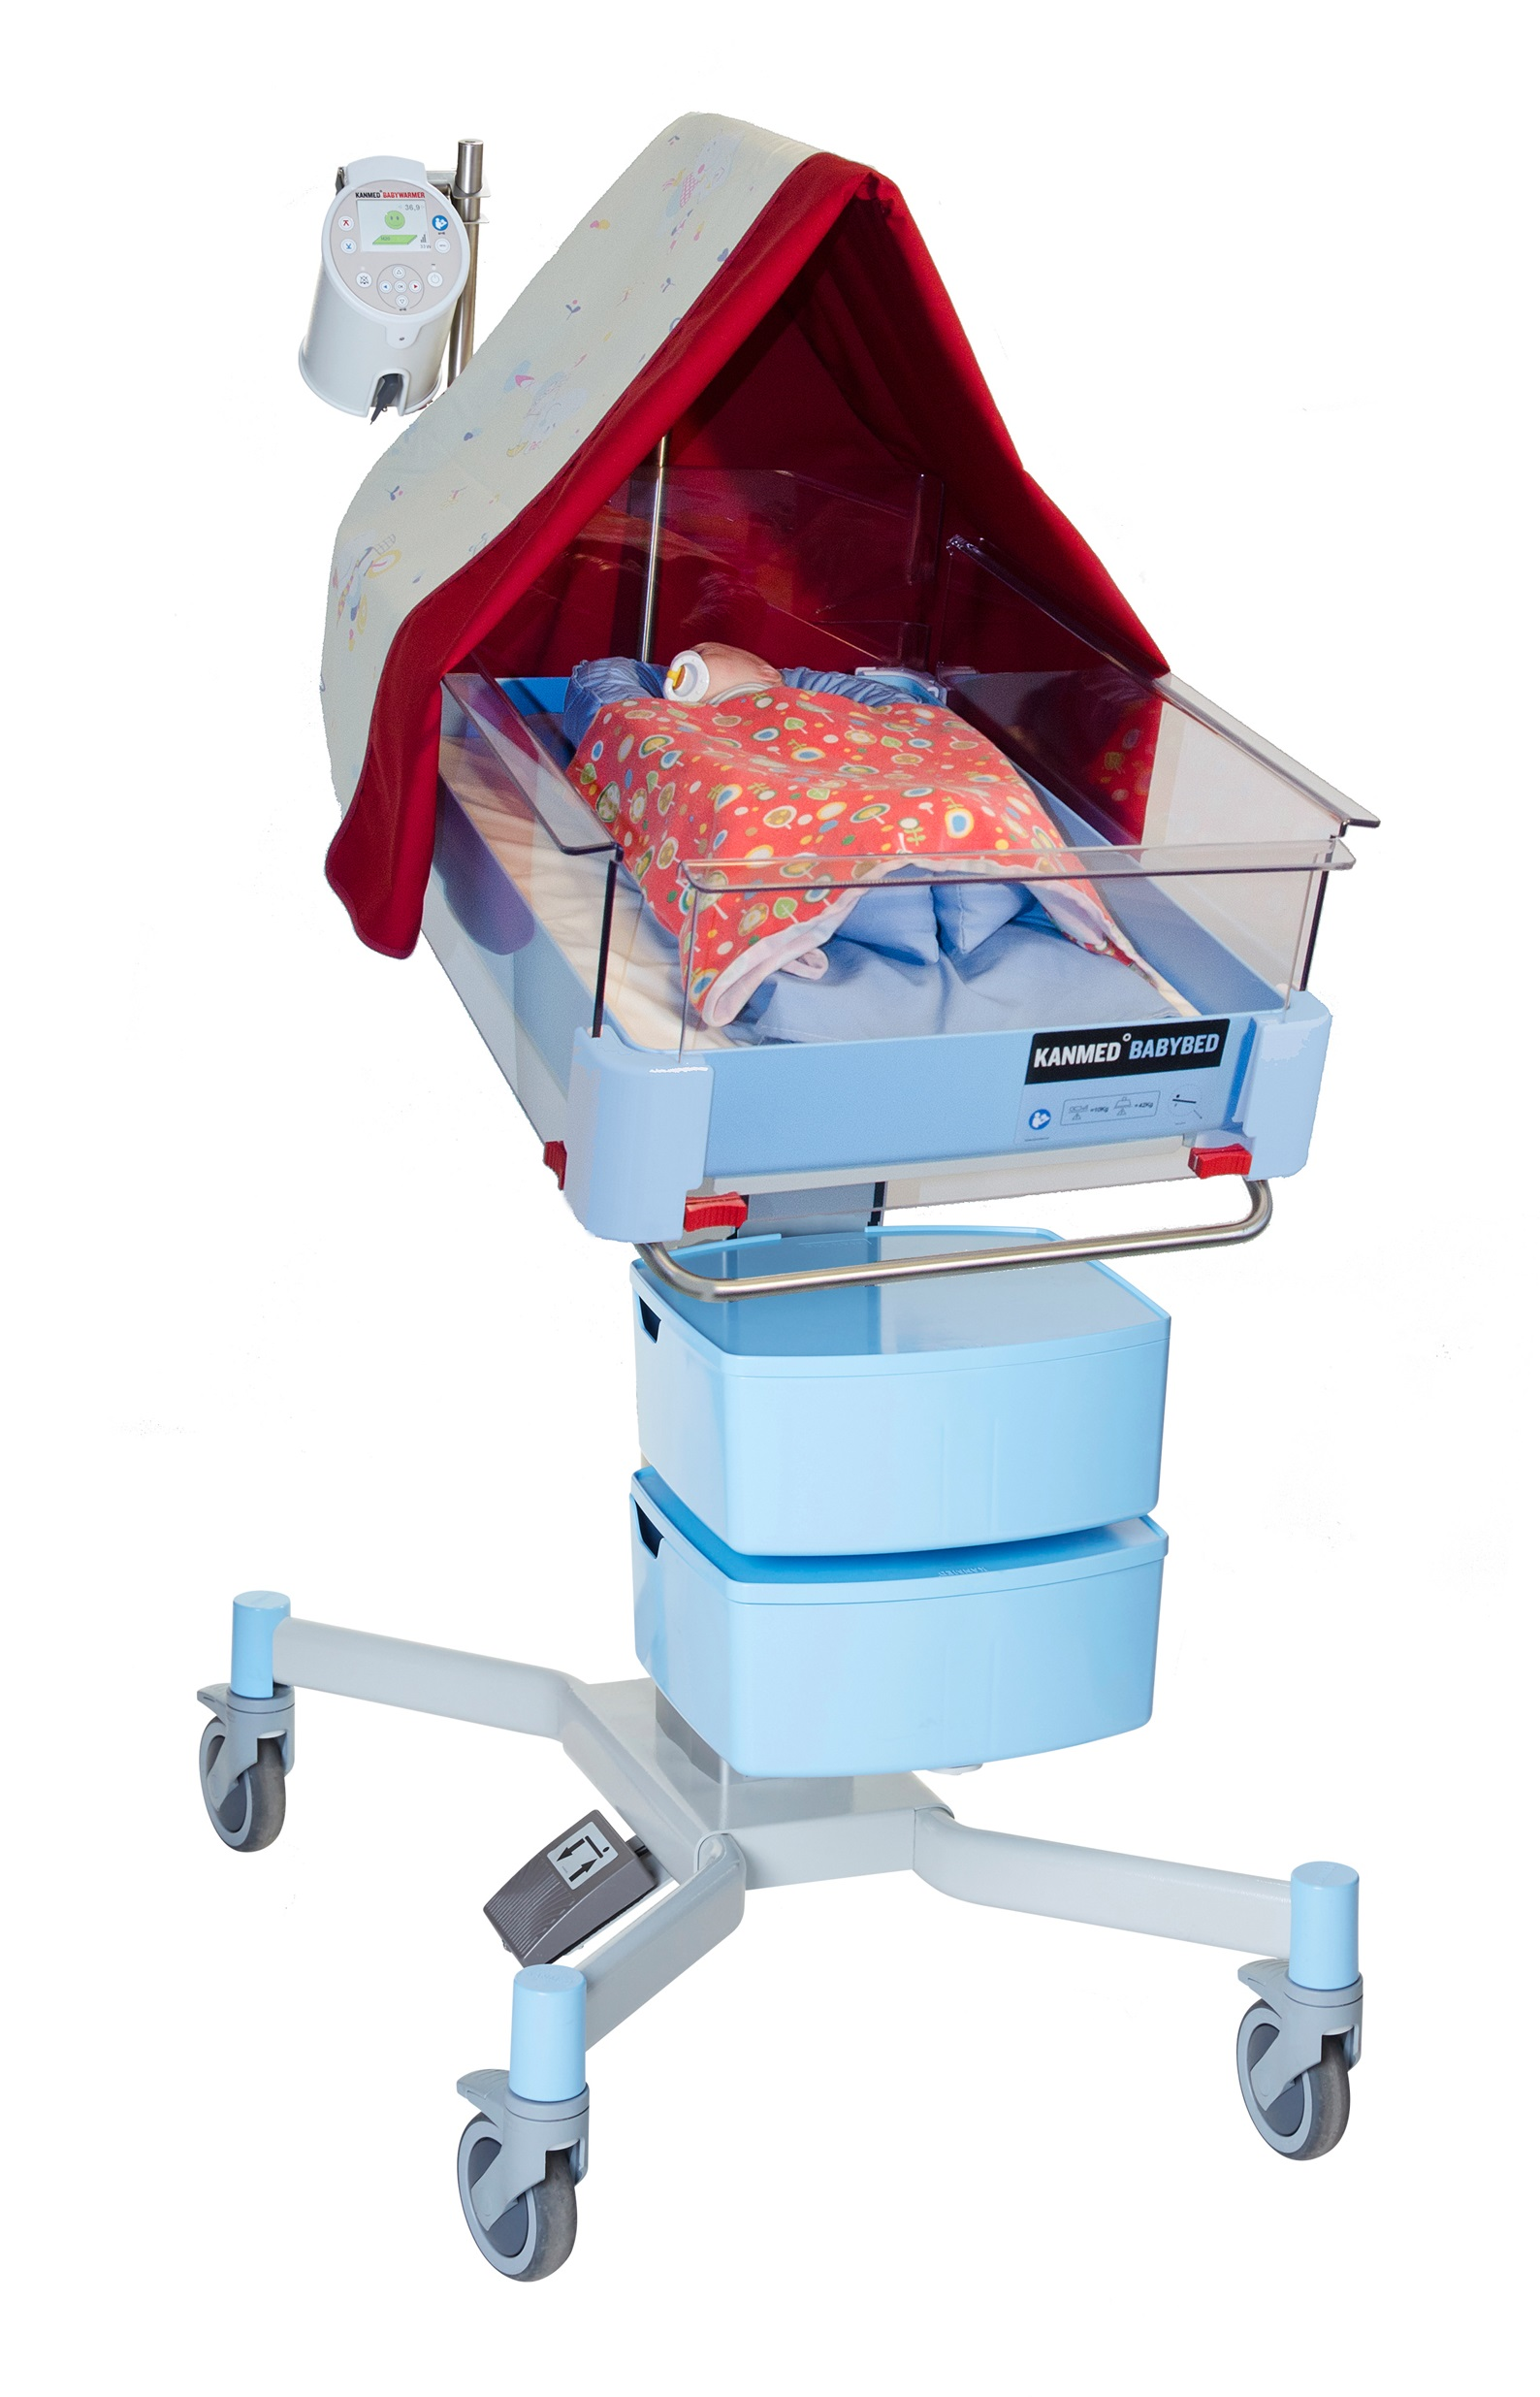 Babybed Aan Bed.Kanmed Baby Bed Hoyland Medical Supplies Brisbane